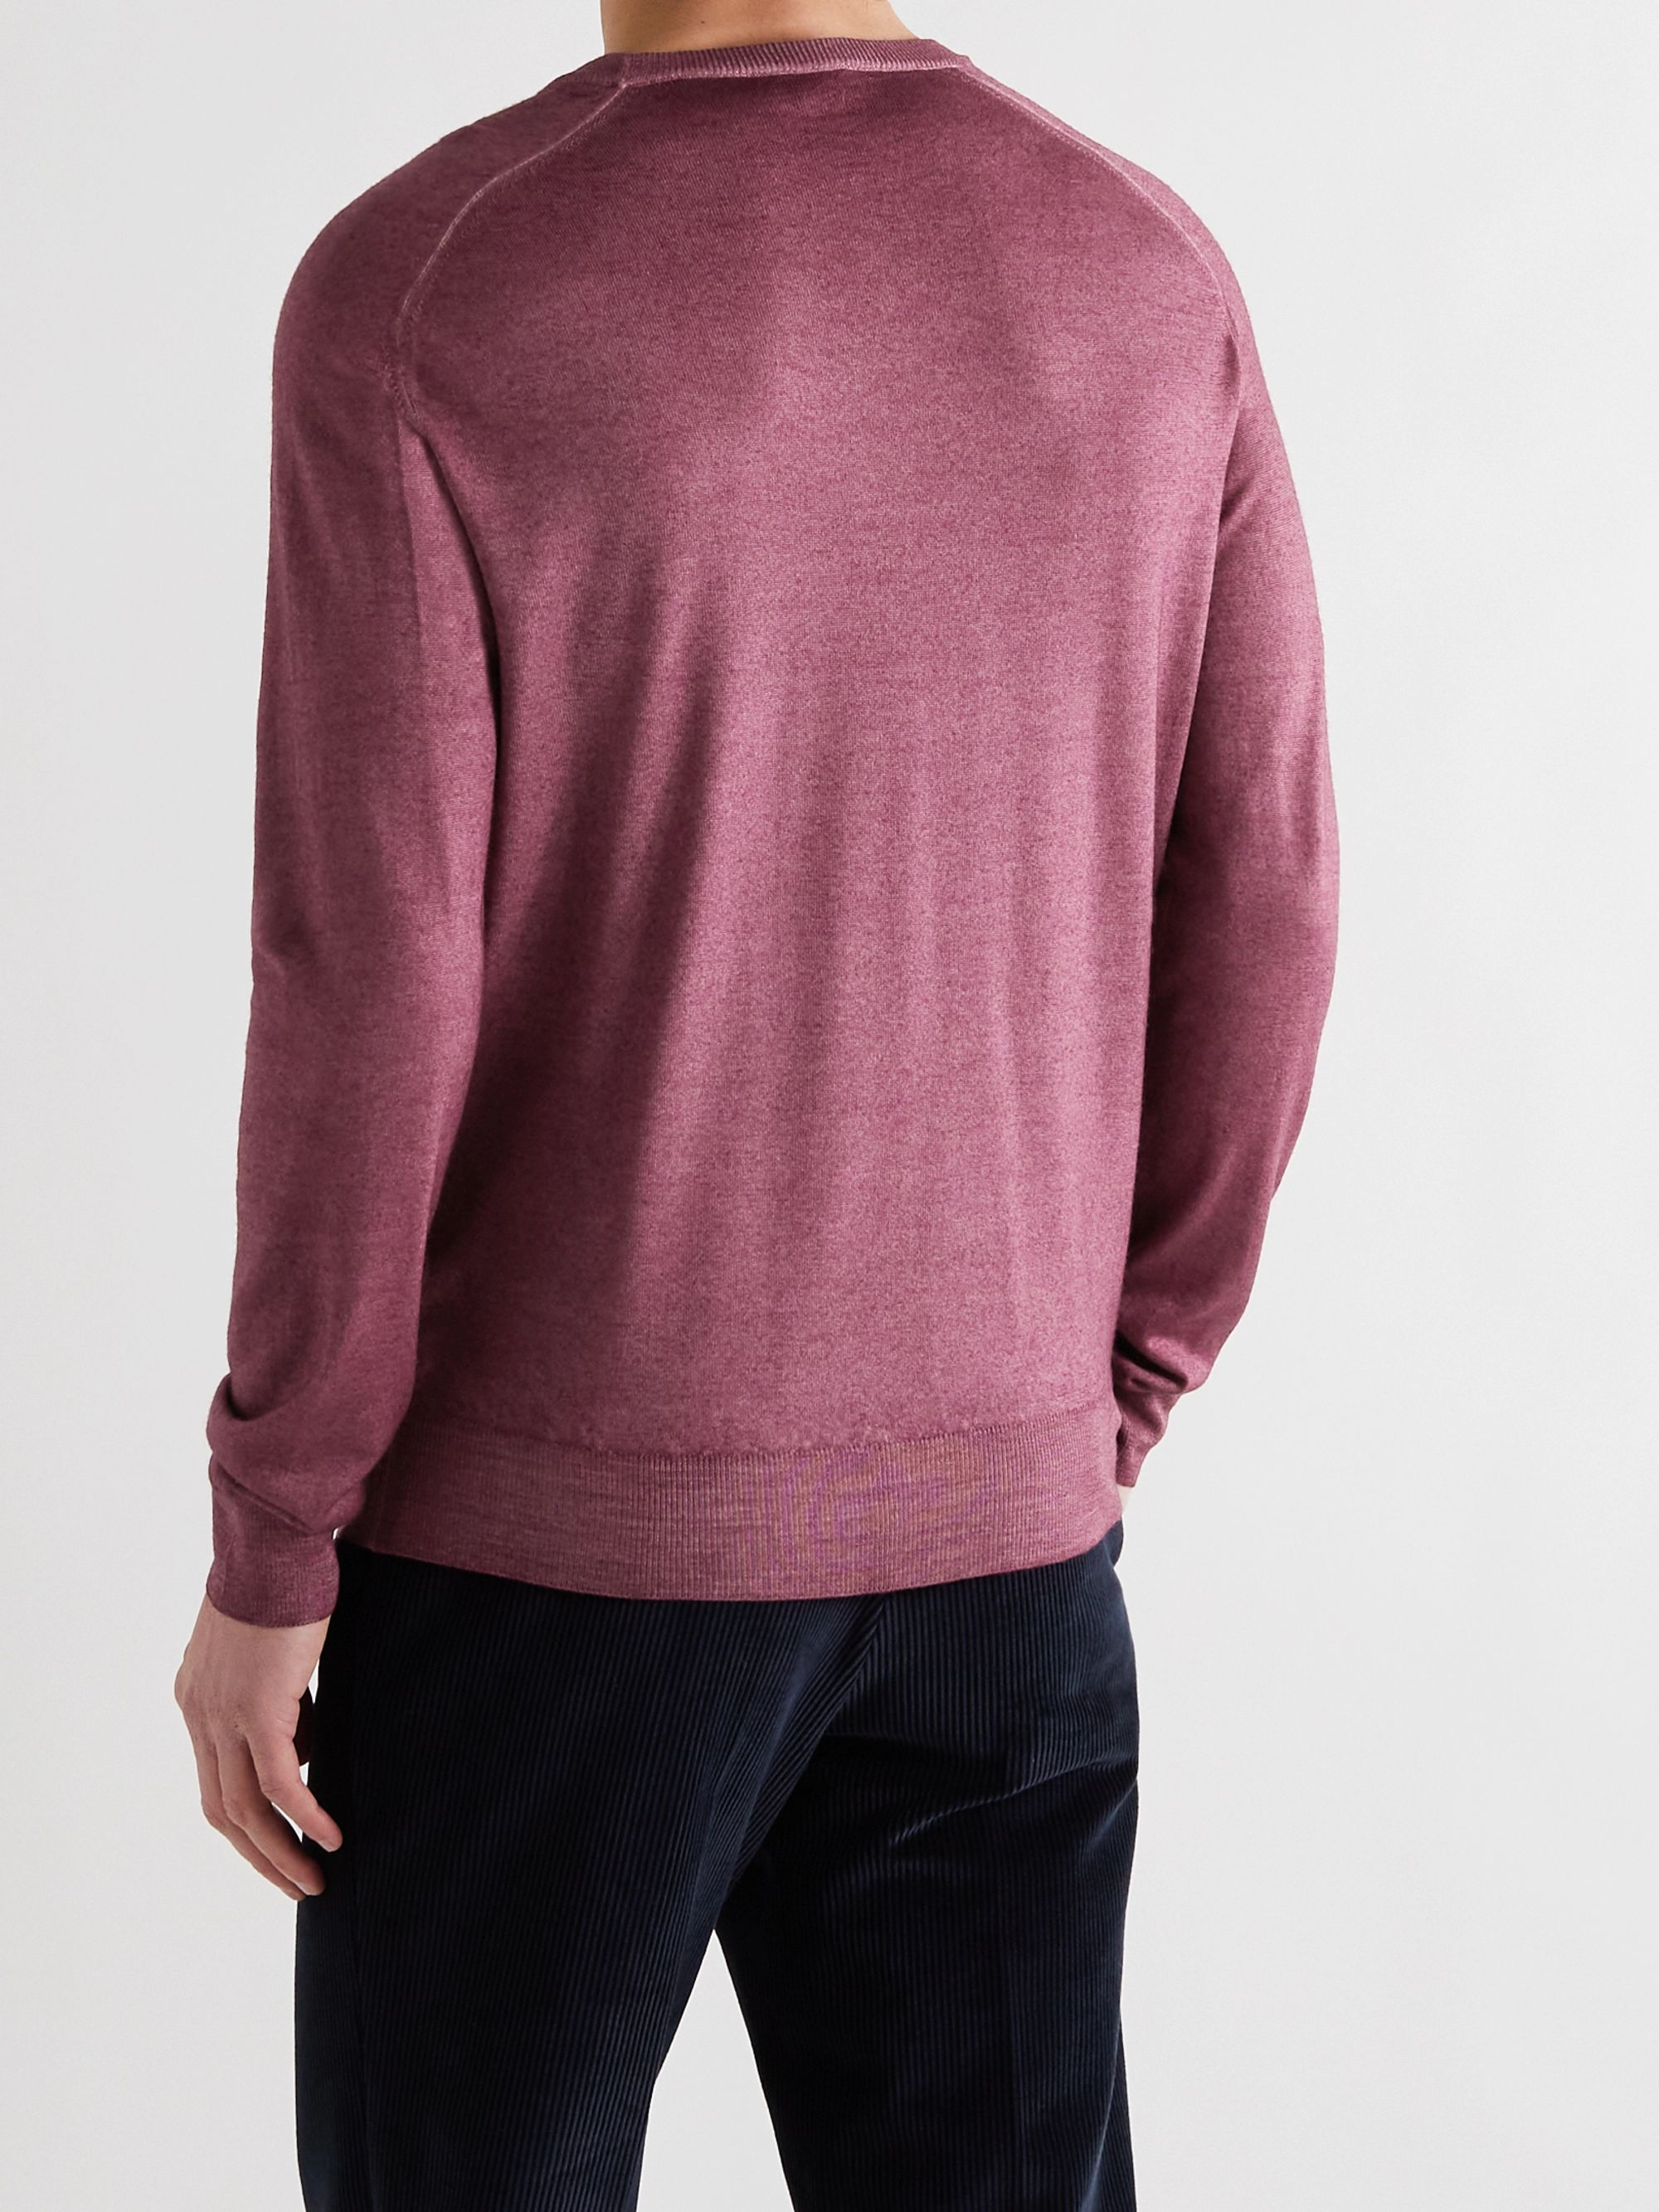 ETRO Slim-Fit Mélange Wool Sweater